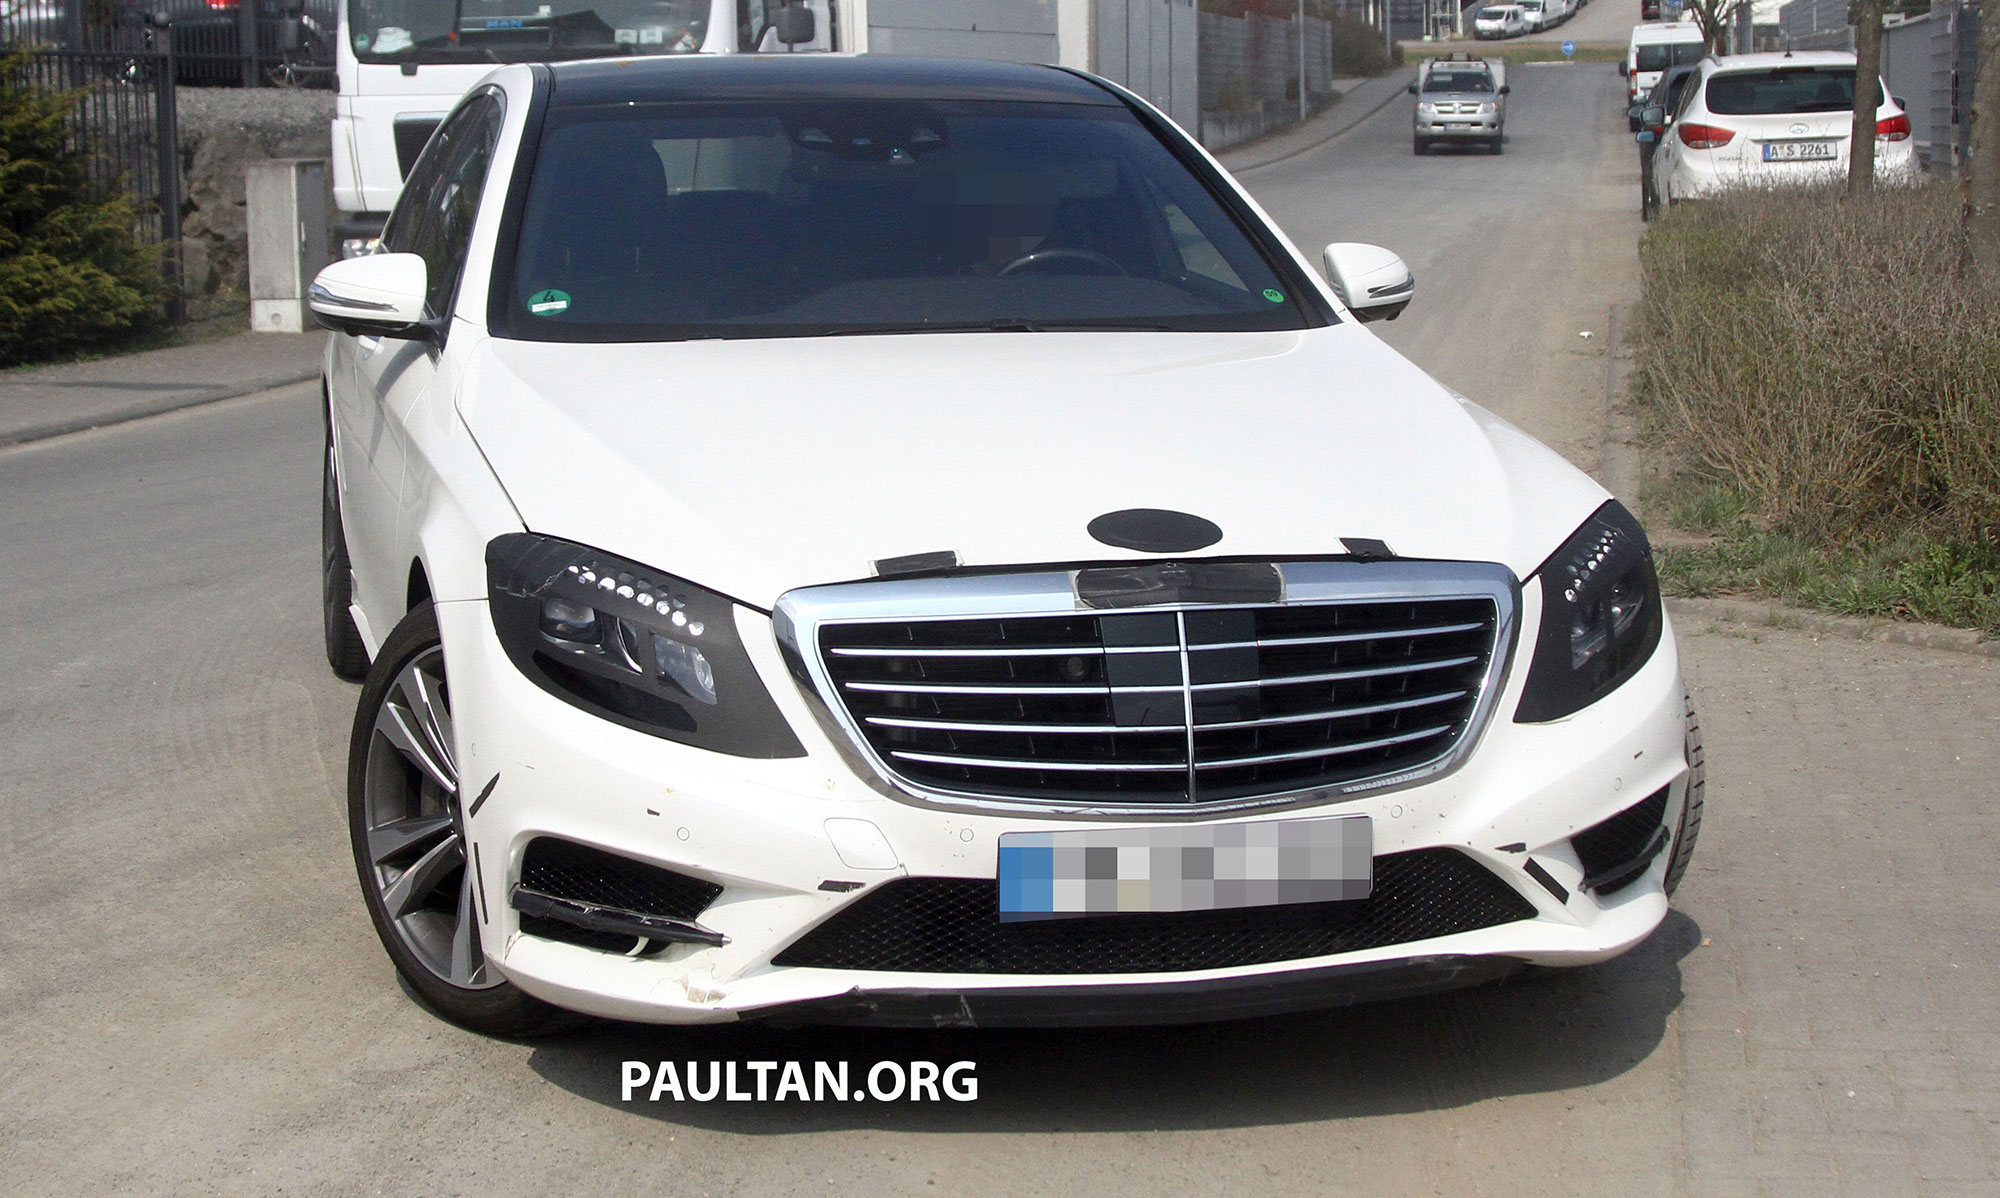 2017 White Mercedes Benz >> W222 Merc S-Class sighted again, this time in white Image 170954